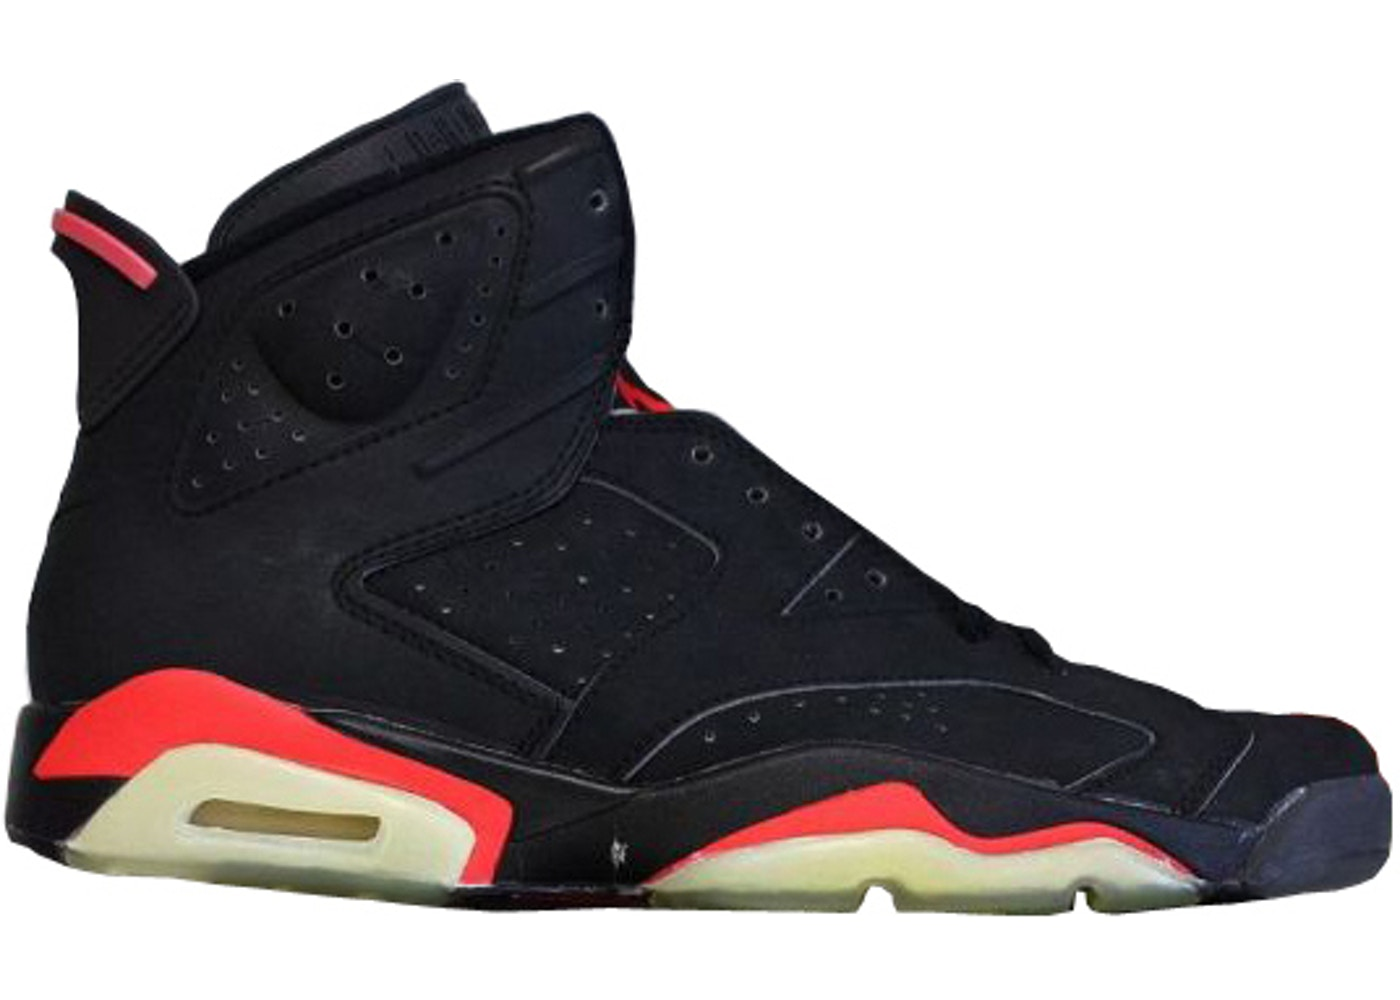 best service 12d87 28707 Jordan 6 OG Infrared Black (1991) - 4391